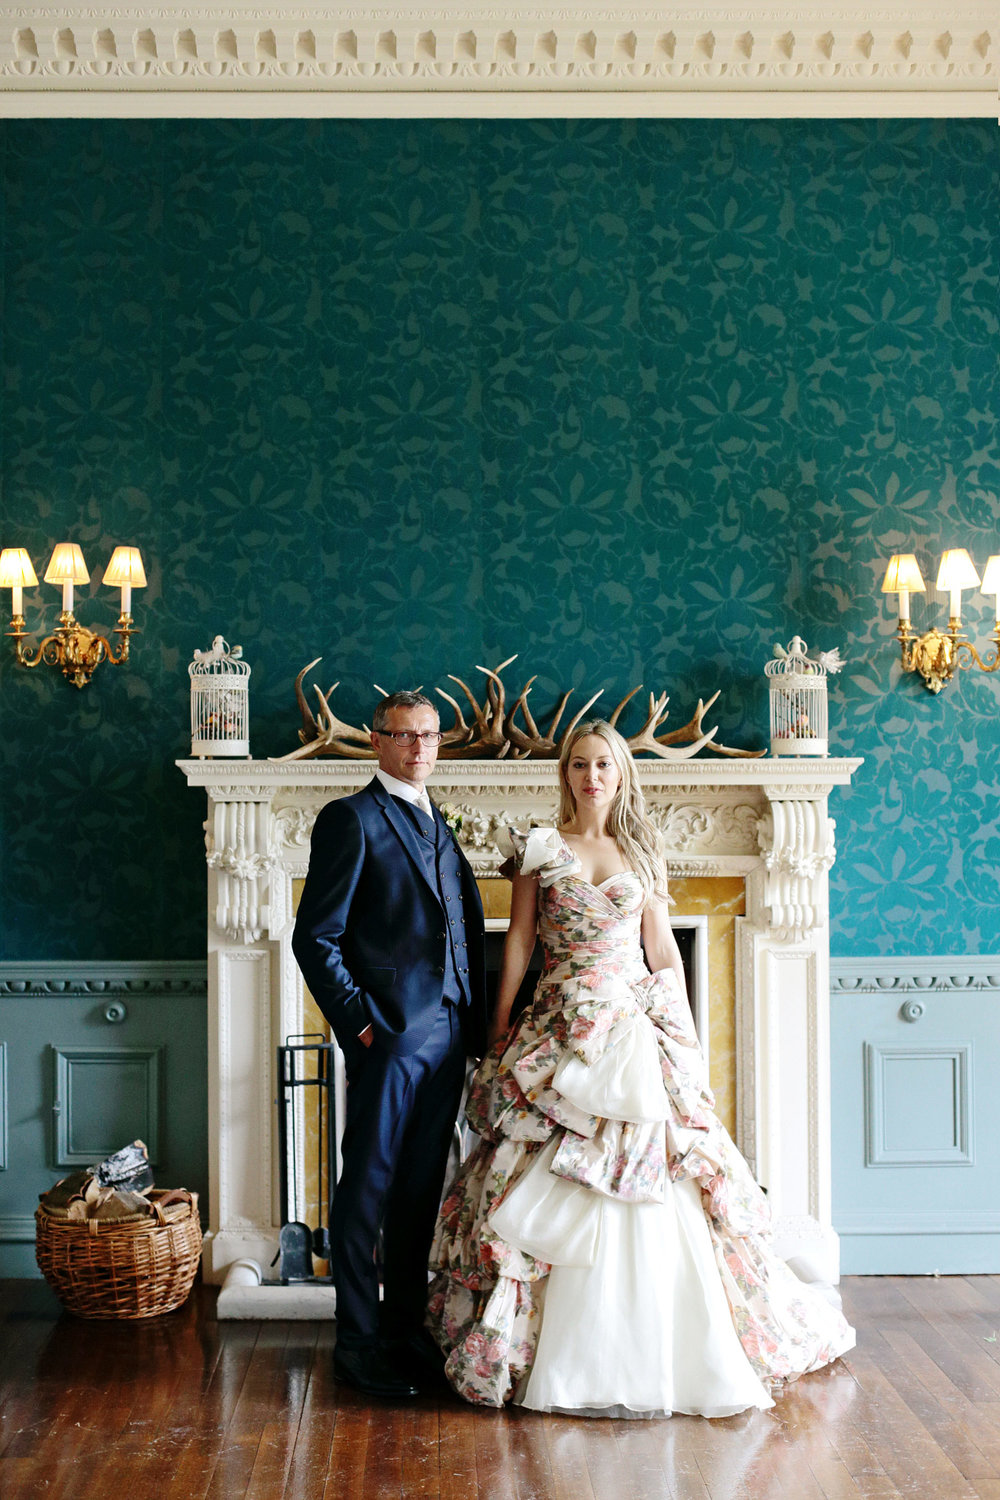 Fasque House bride and groom wedding portrait